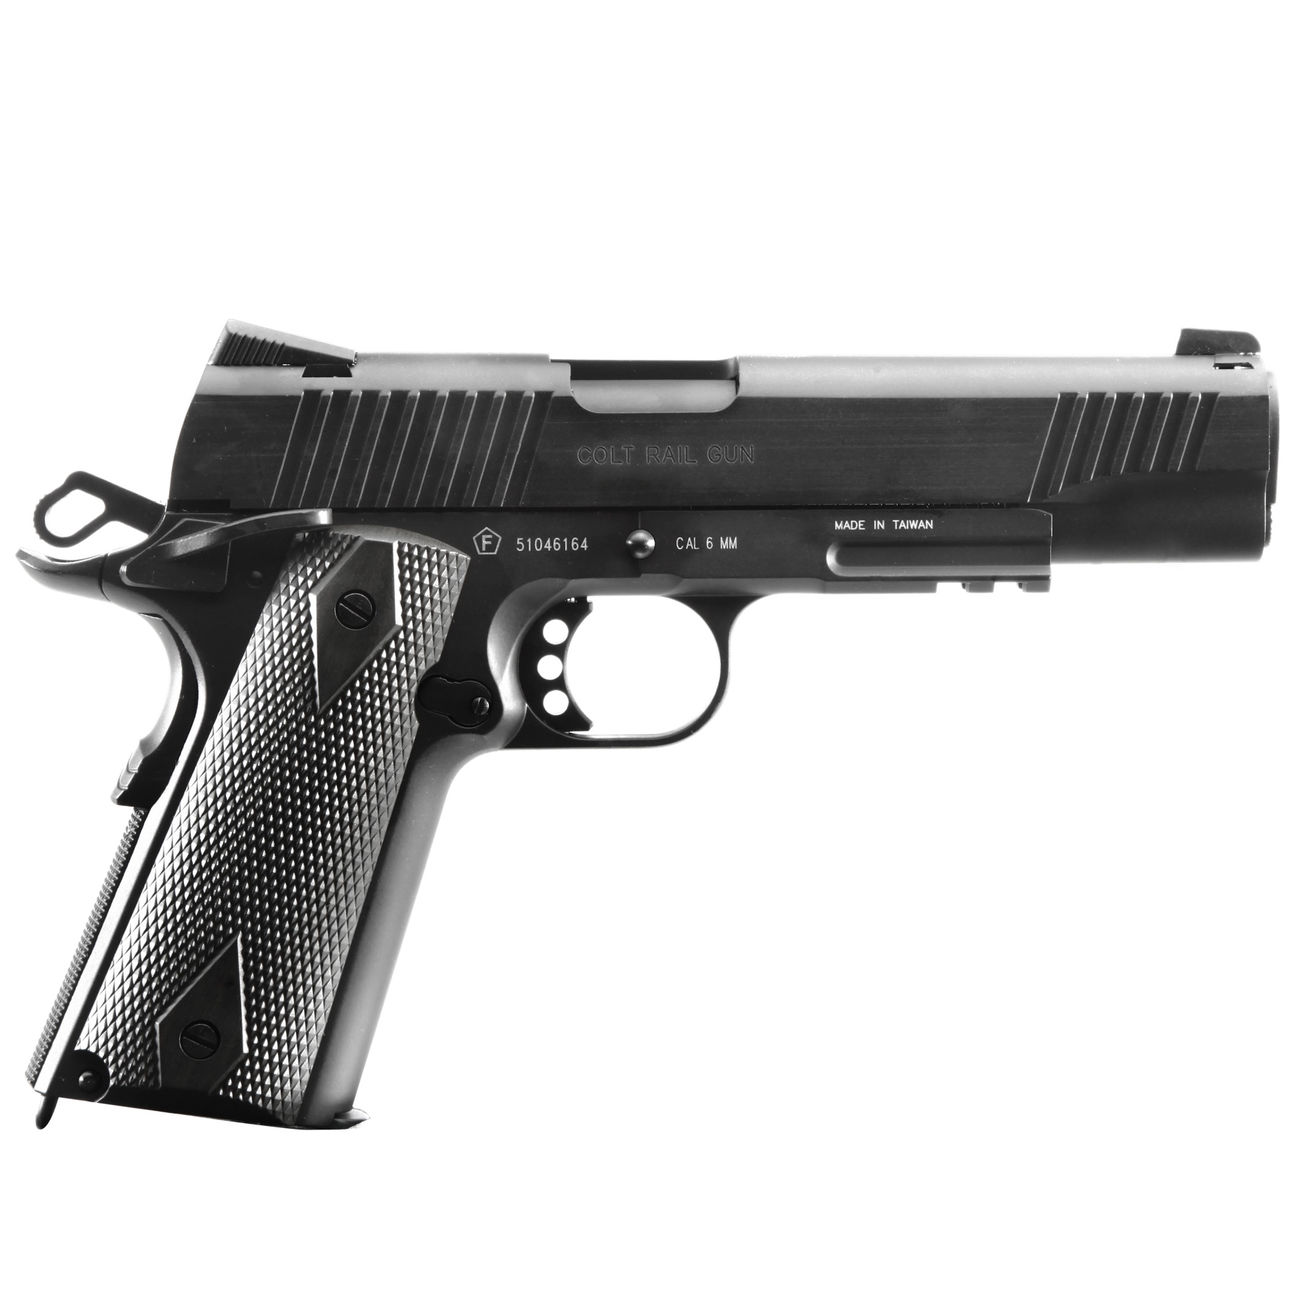 Cybergun Colt 1911 Rail Gun Vollmetall CO2 BlowBack 6mm BB schwarz 2